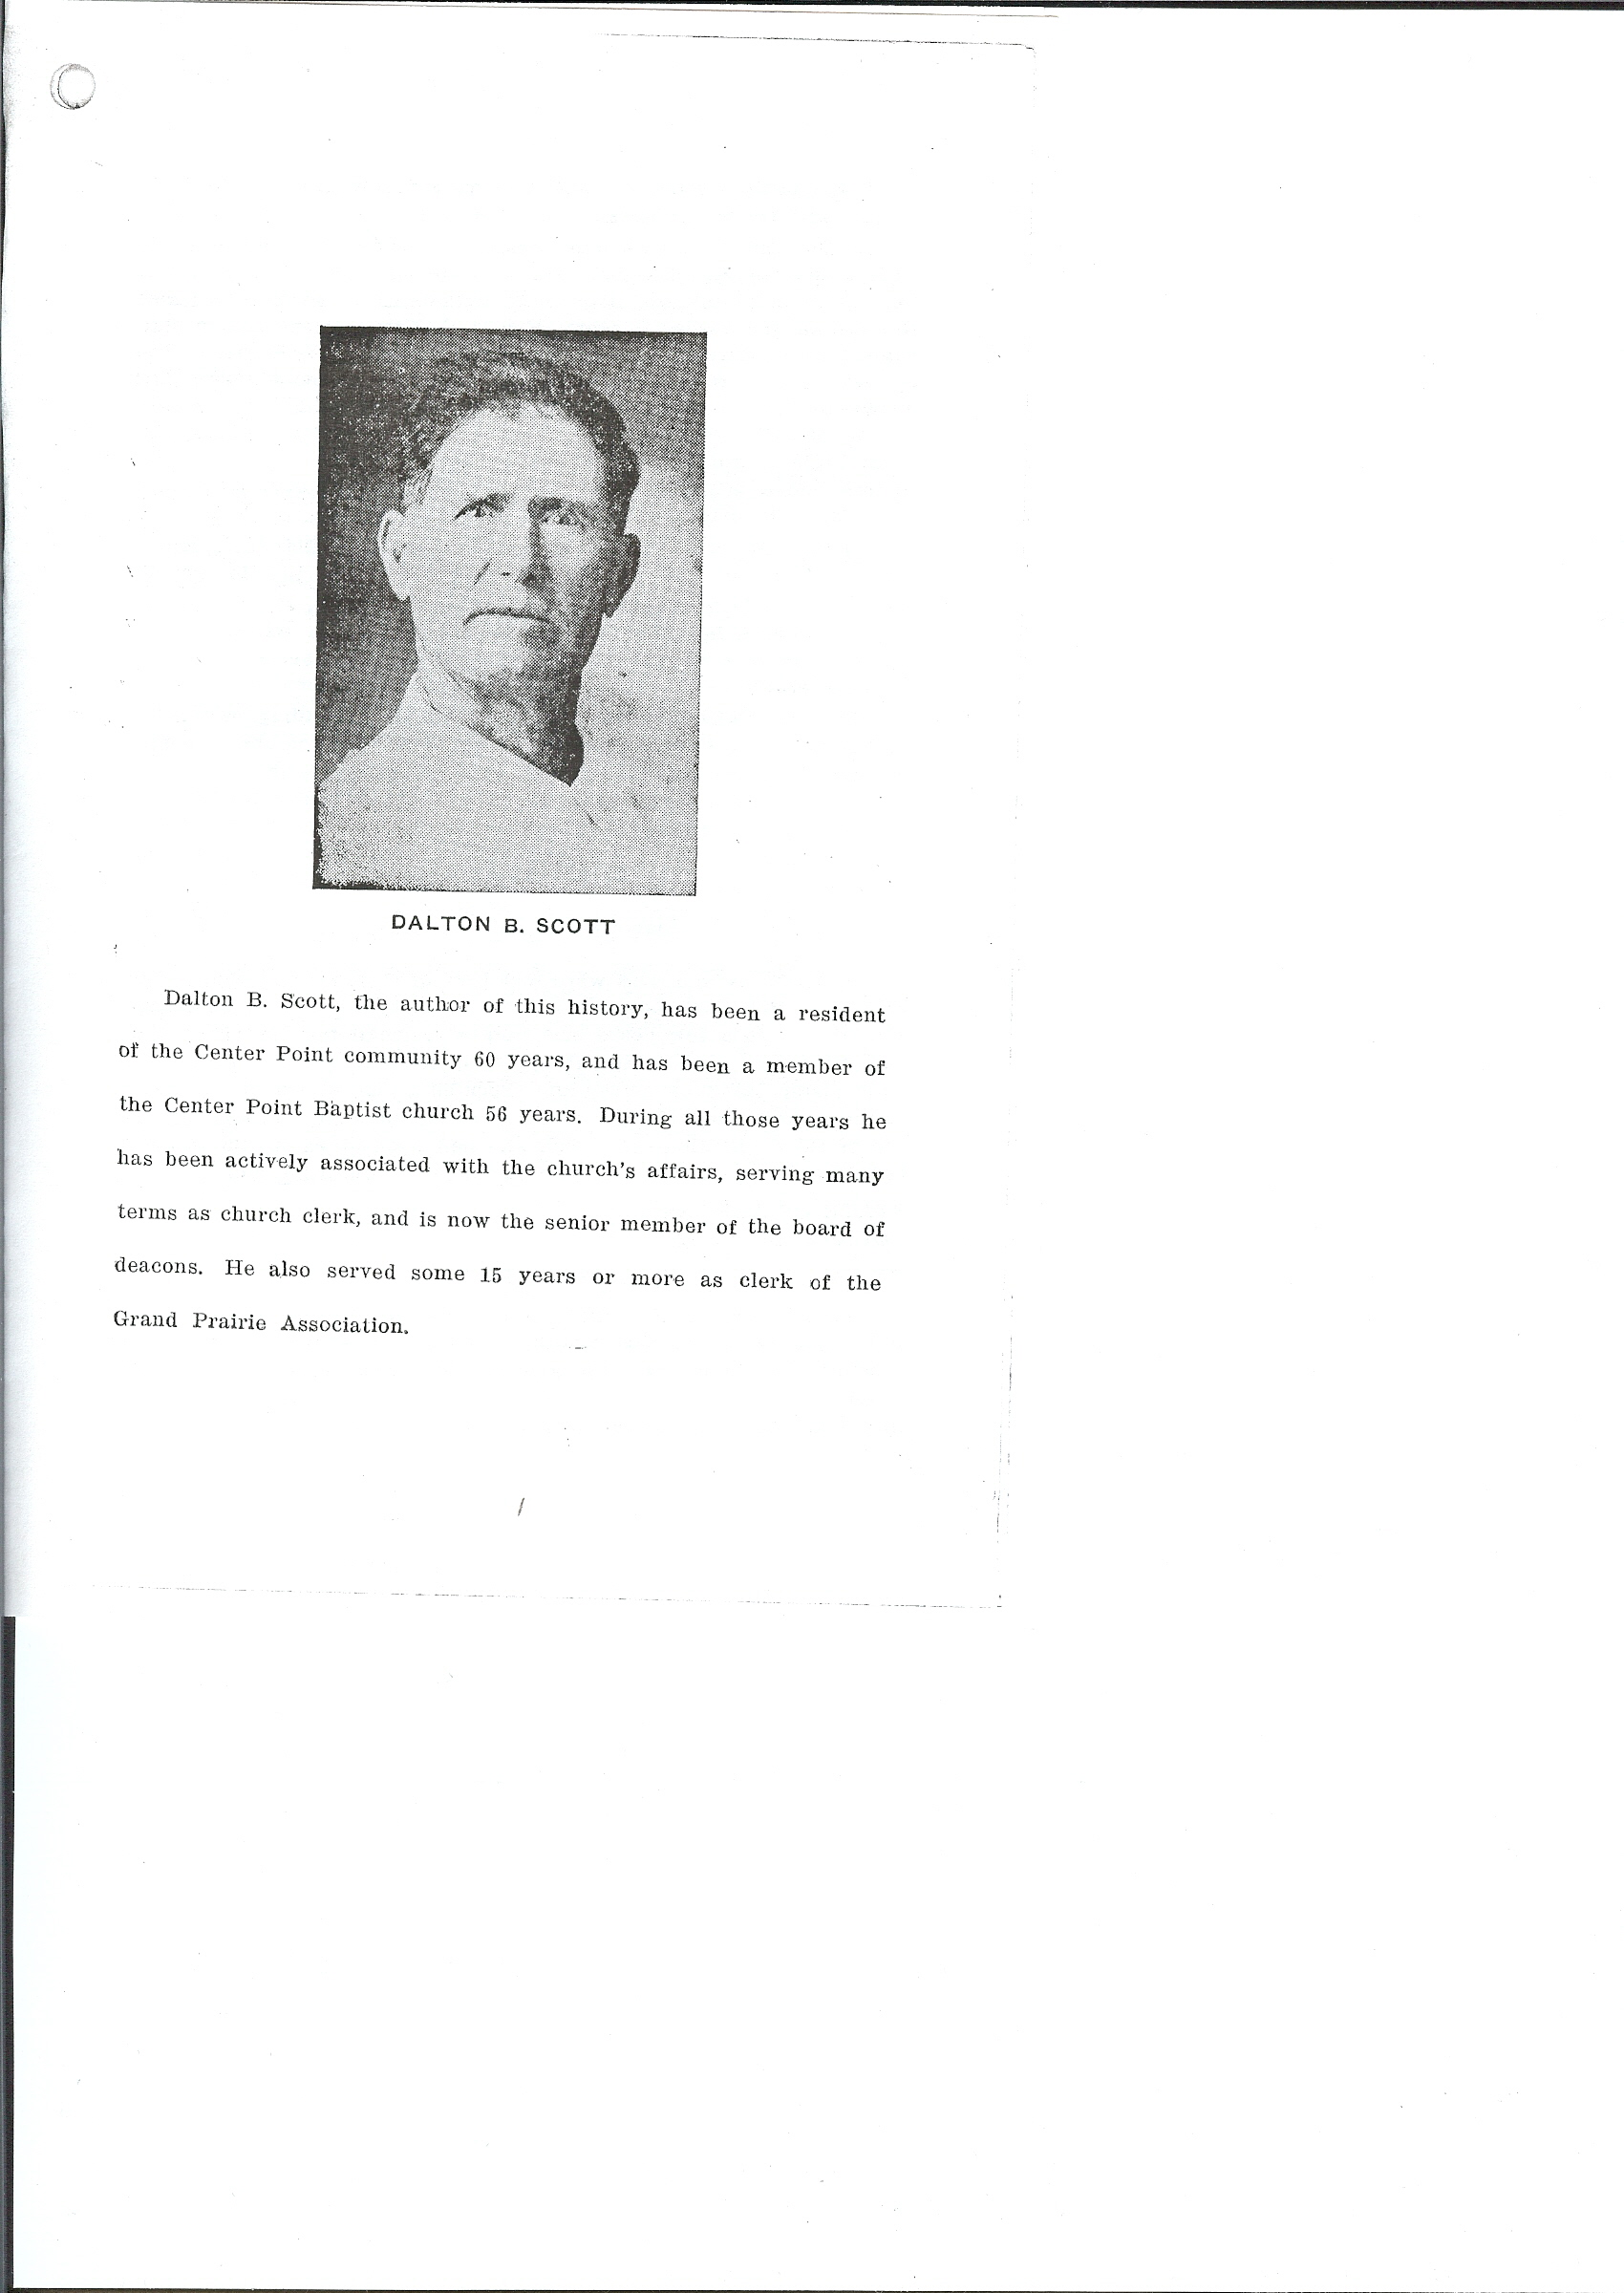 catholic singles in de valls bluff Disappearance of civilian in devalls bluff,  was like around the devall's bluff for a single traveler who was a union  travel from de valls bluff to.